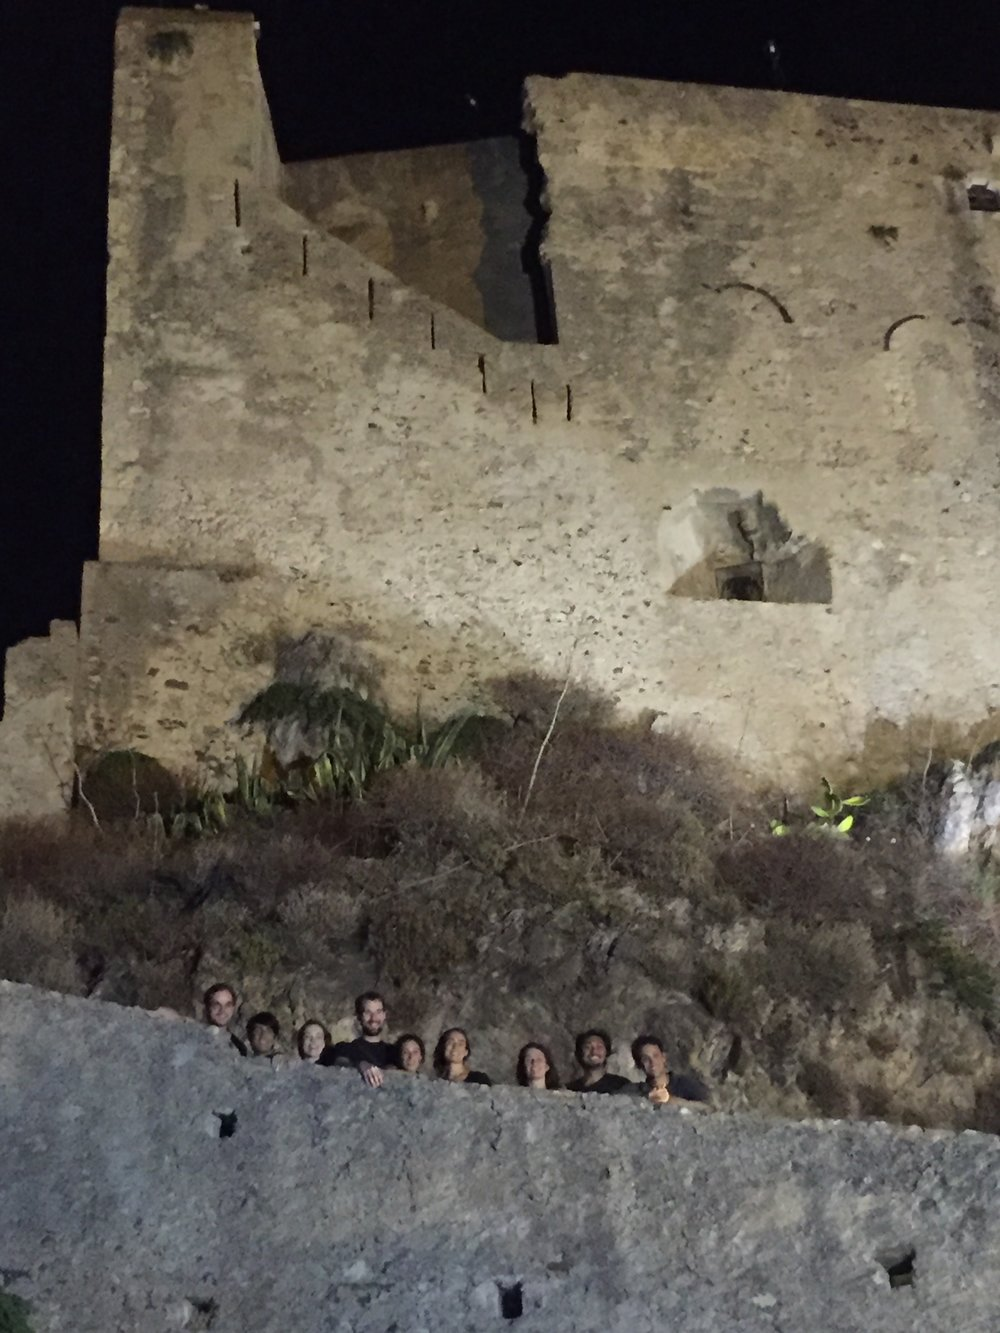 Company members say goodbye to Sicily after their final performance for the summer at Castello Rufo Ruffo in Scaletta Zanclea